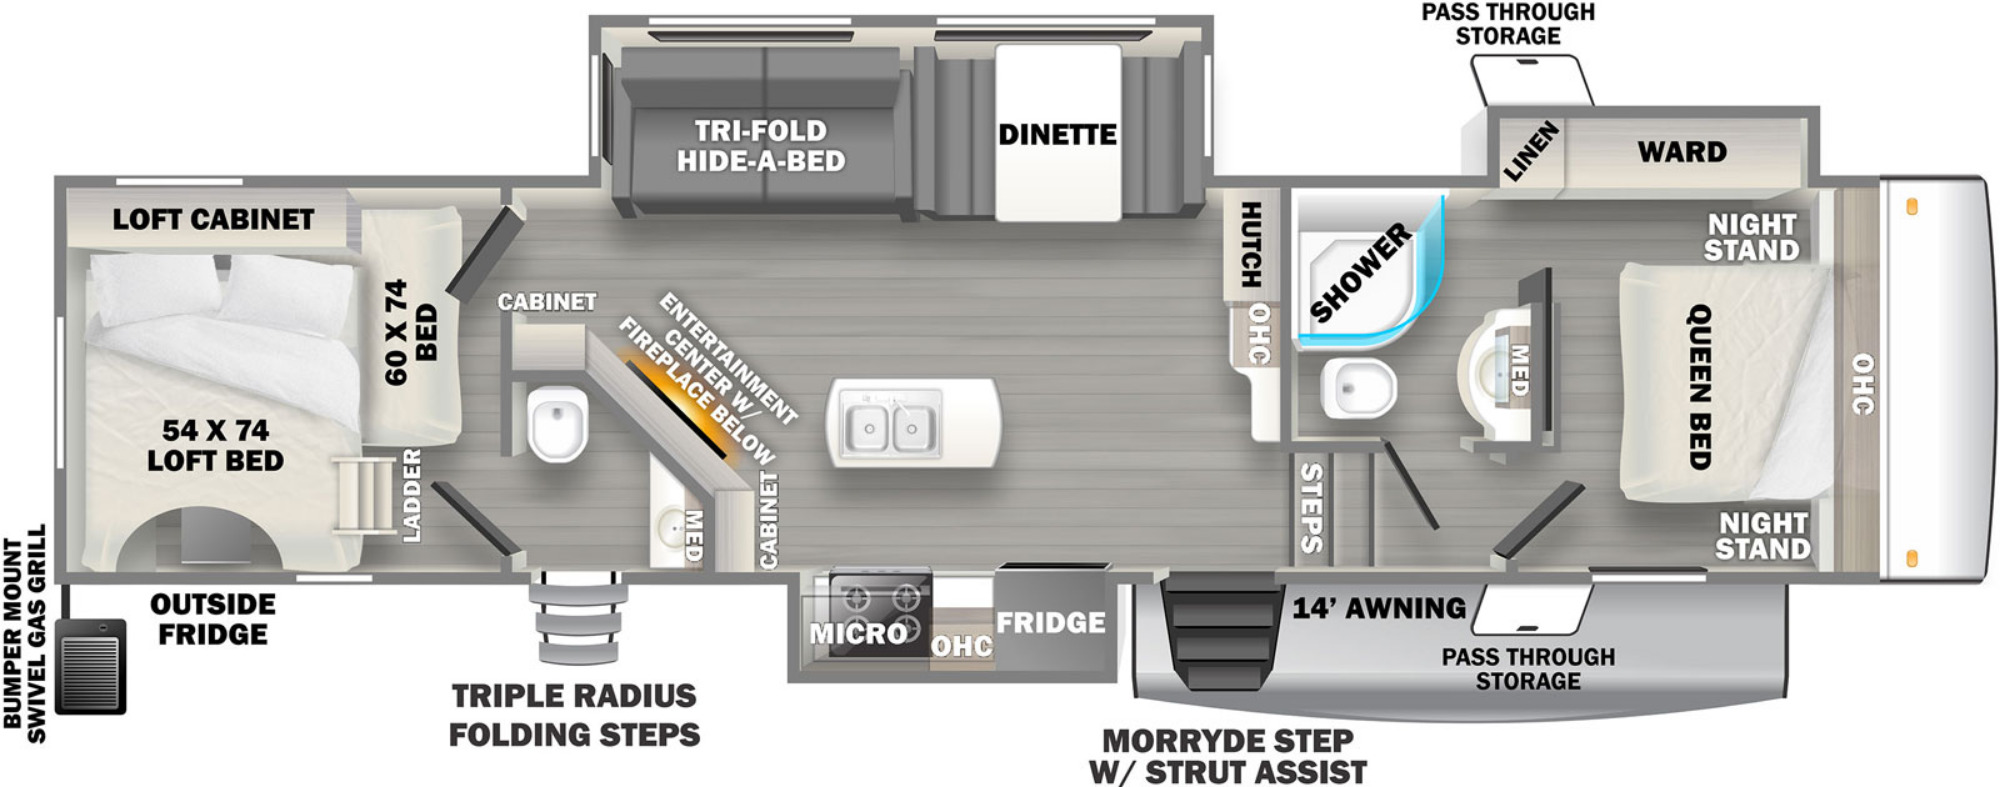 View Floor Plan for 2022 FOREST RIVER SIERRA 3440BH